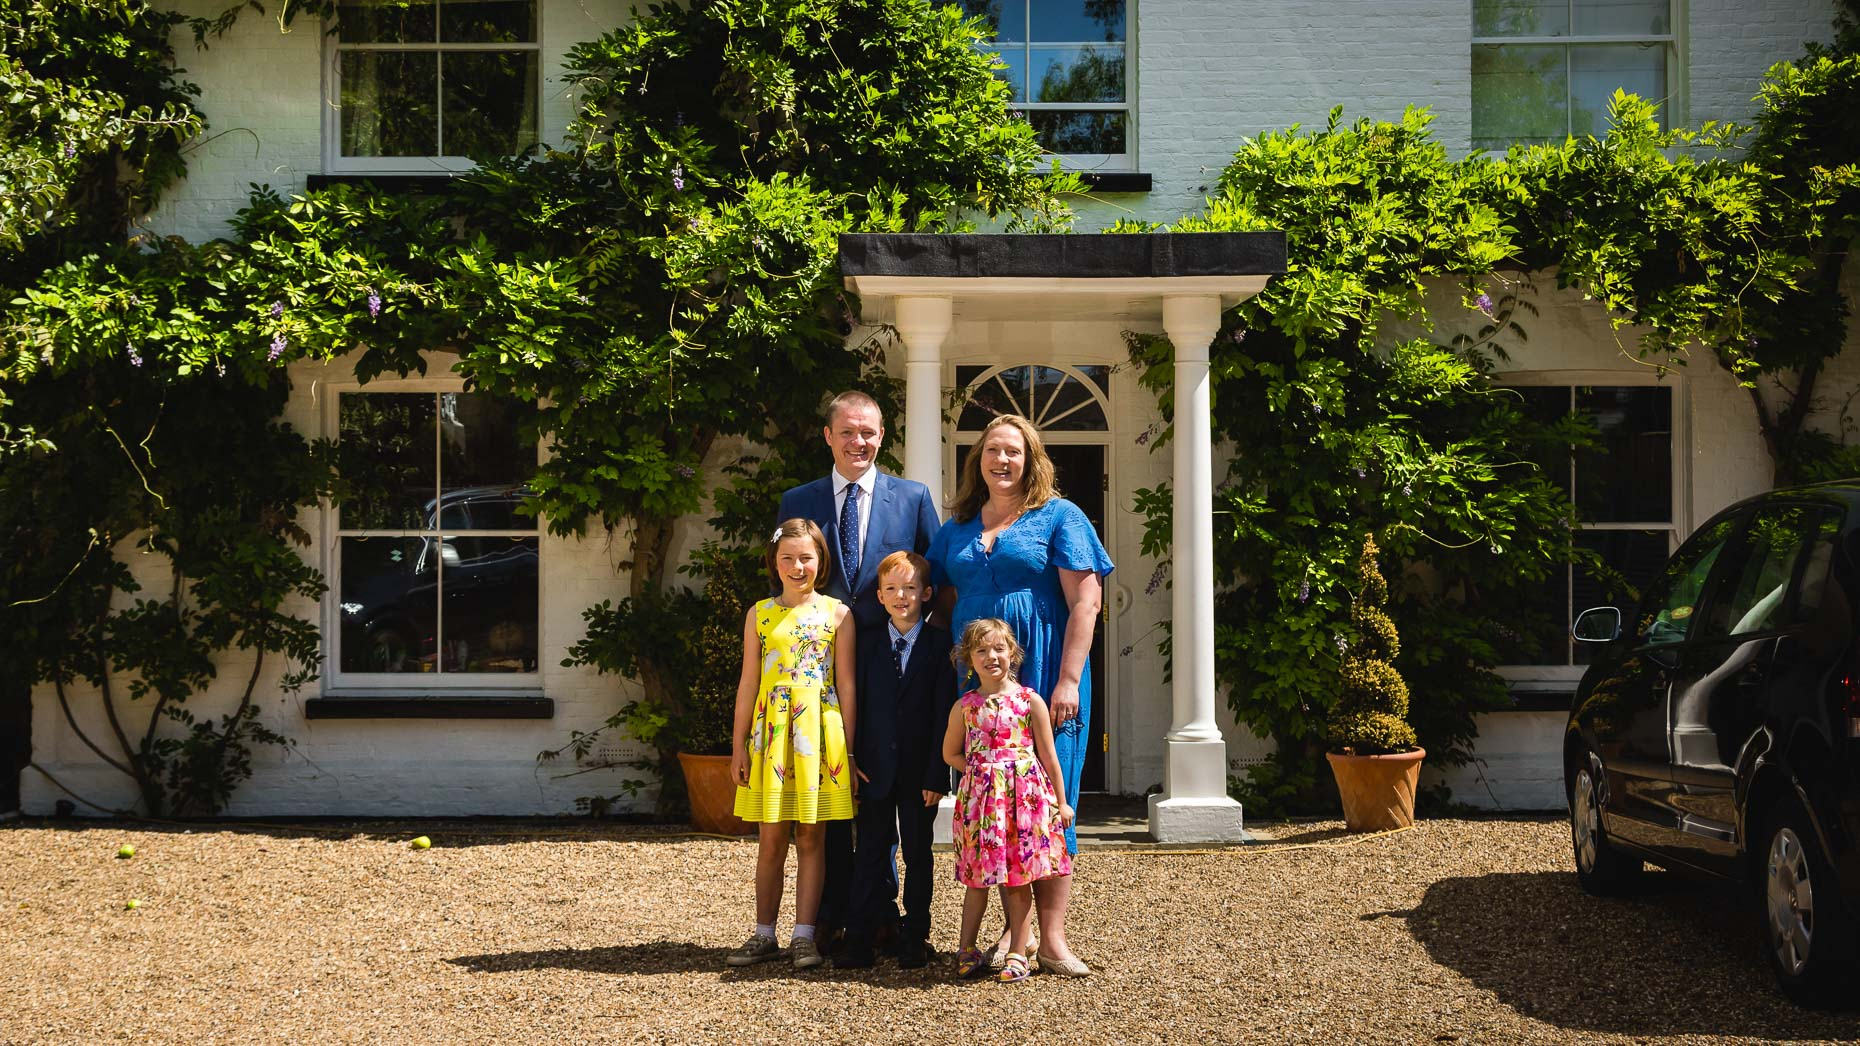 Ashtead Doorstep Portraits 84